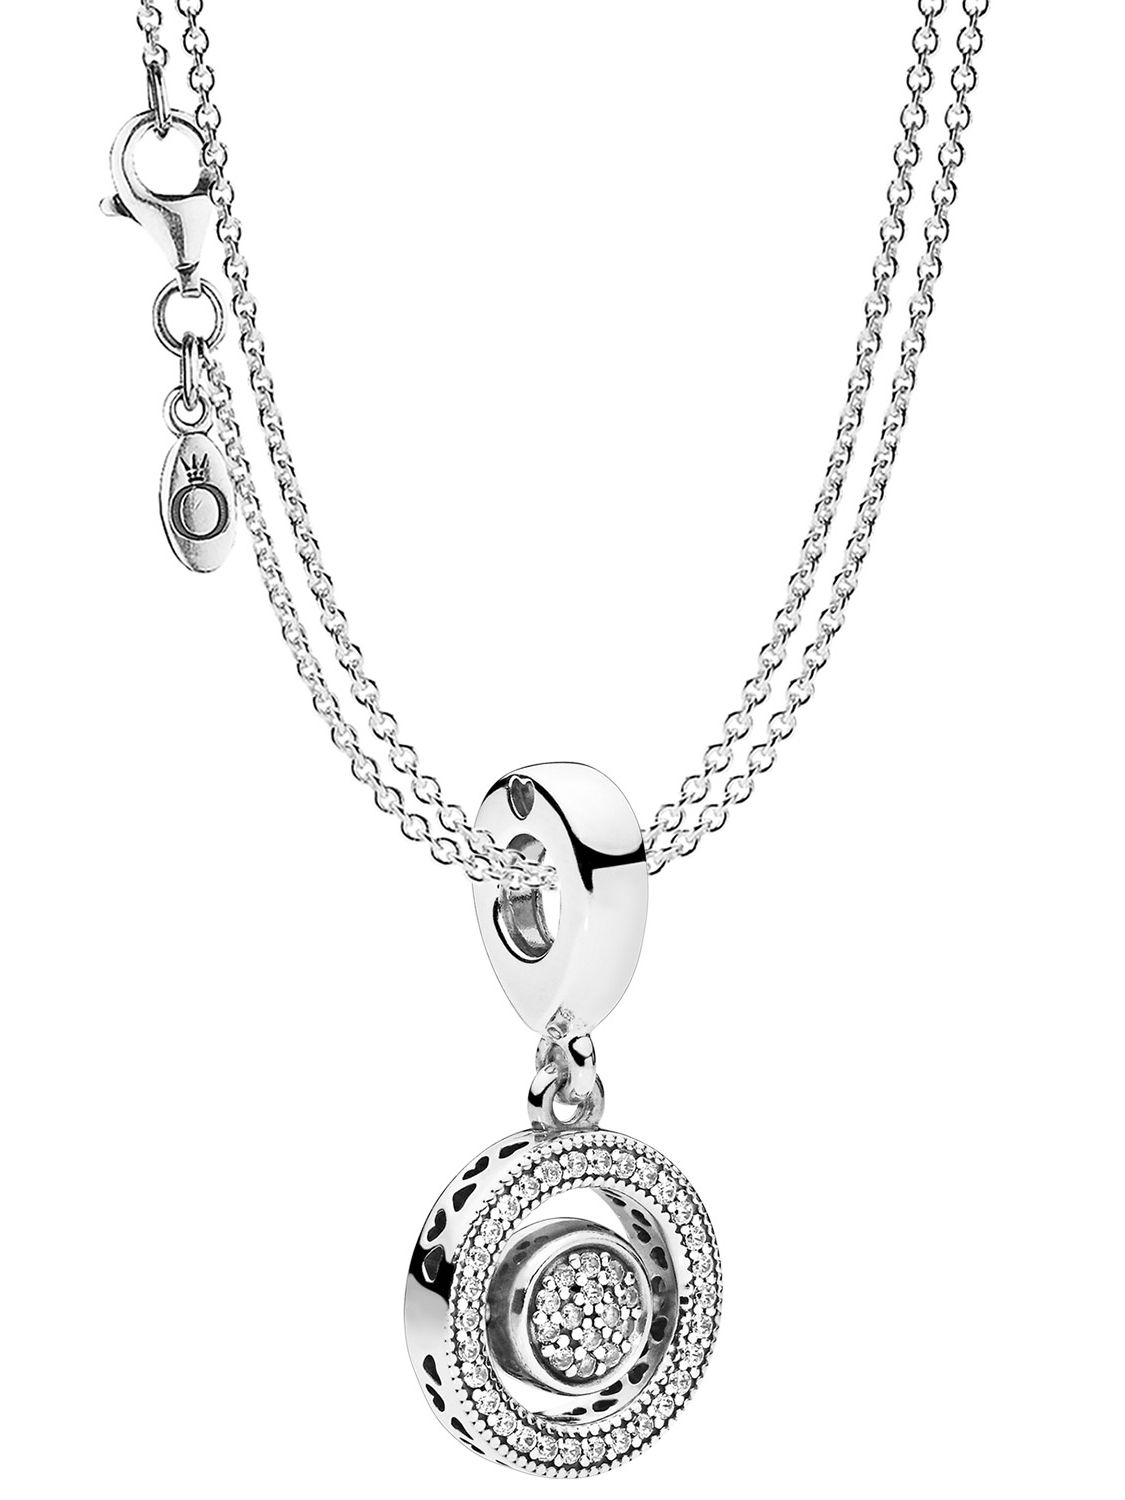 Pandora 08591 Necklace With Charm Pendant Logo Within Most Recent Pandora Lockets Logo Necklaces (Gallery 1 of 25)